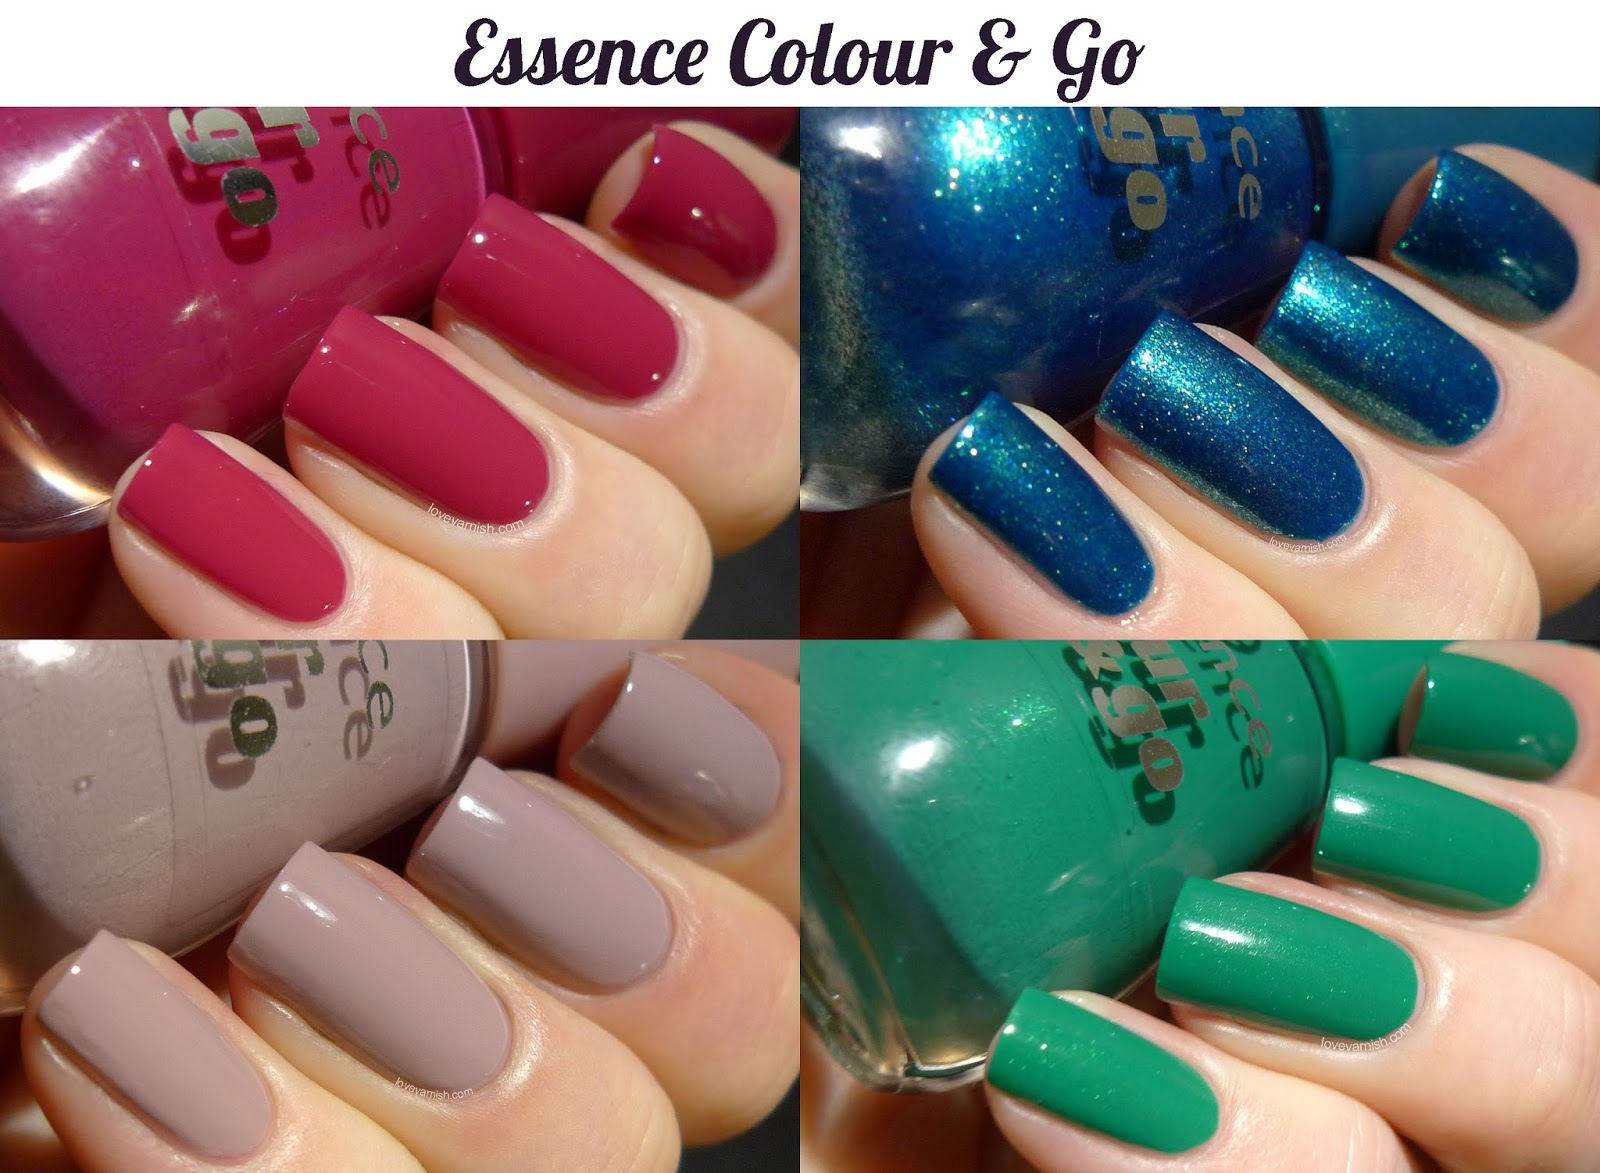 Essence Colour & Go collage nail polish swatch and review